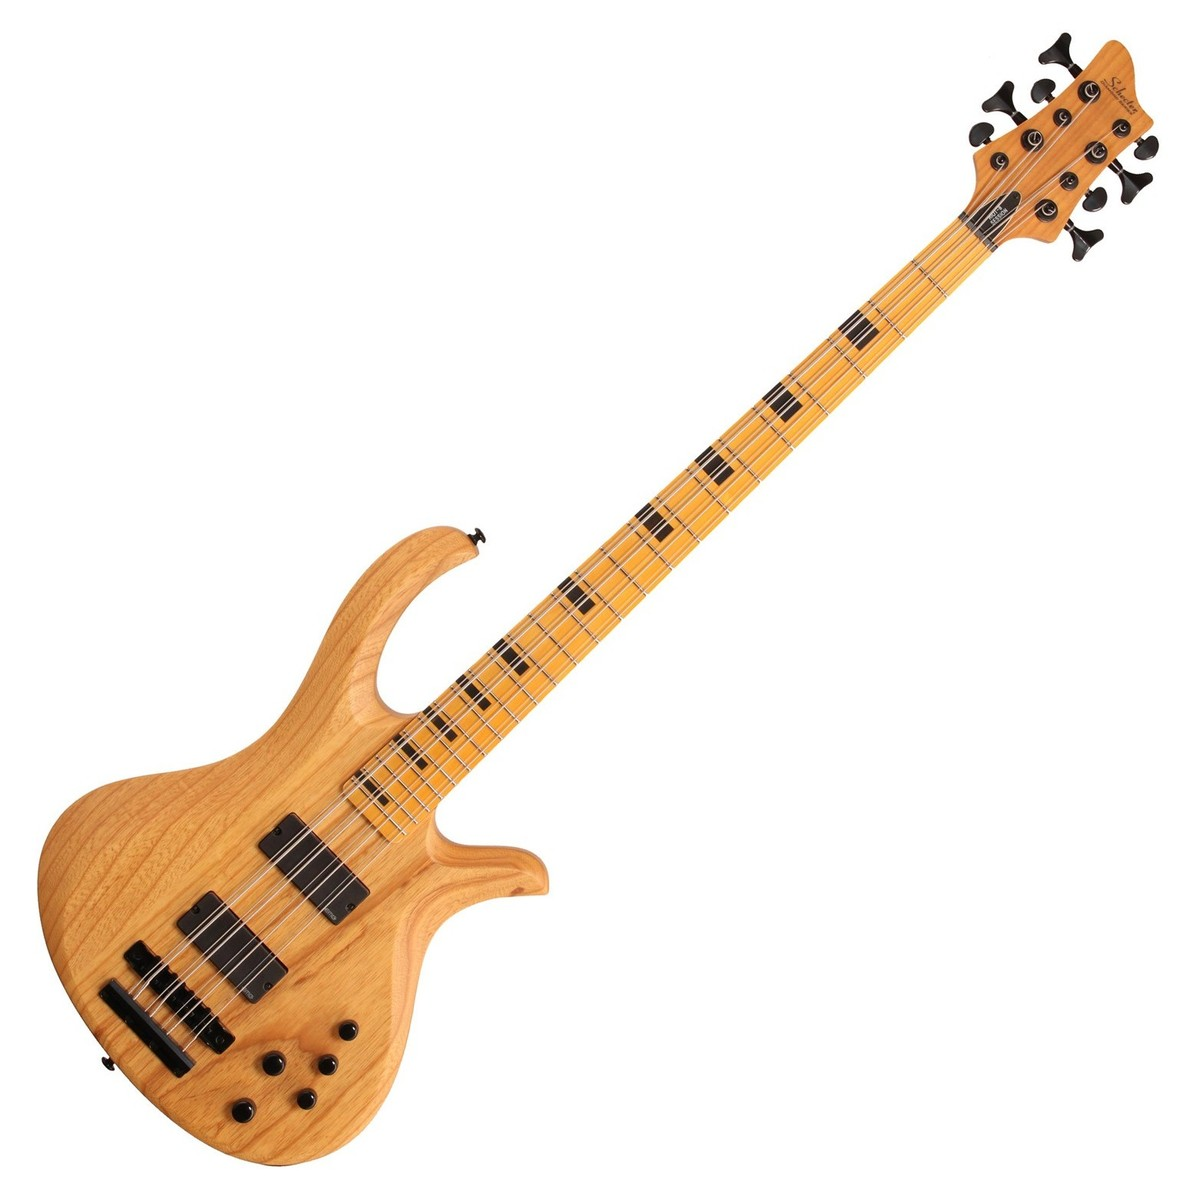 schecter riot session 8 electric bass guitar aged natural satin at. Black Bedroom Furniture Sets. Home Design Ideas